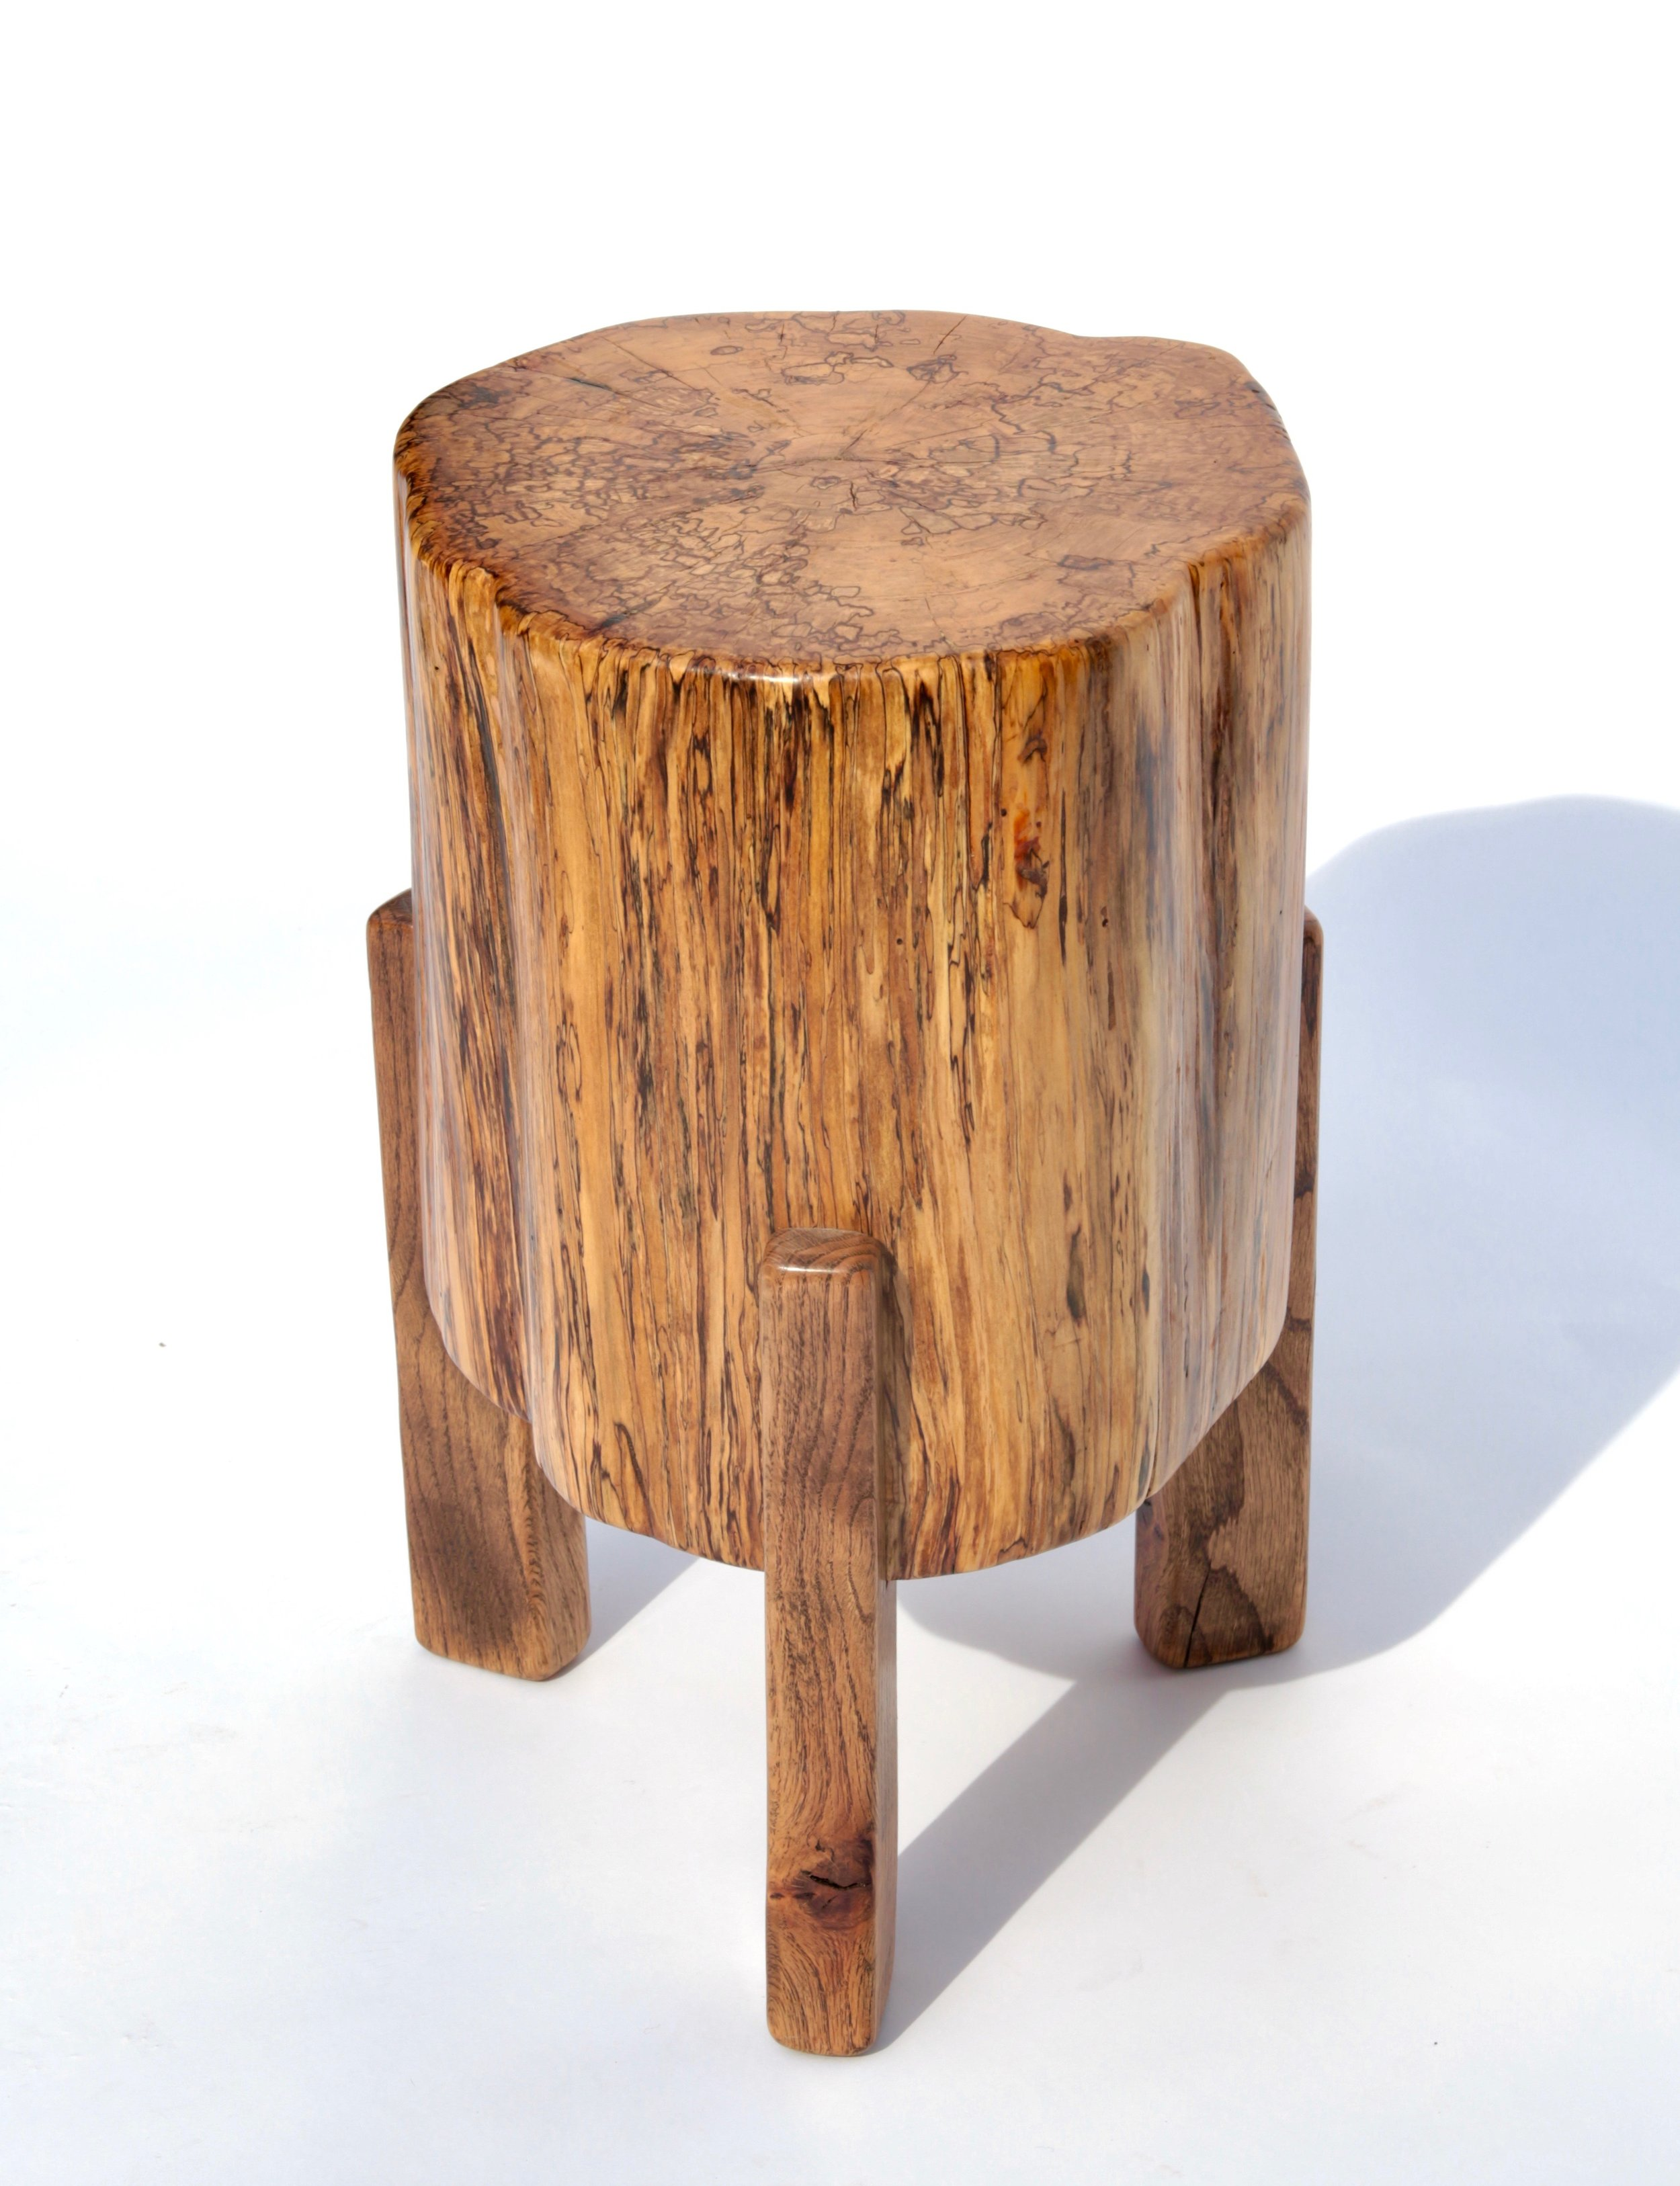 Small Stump Table (side view)